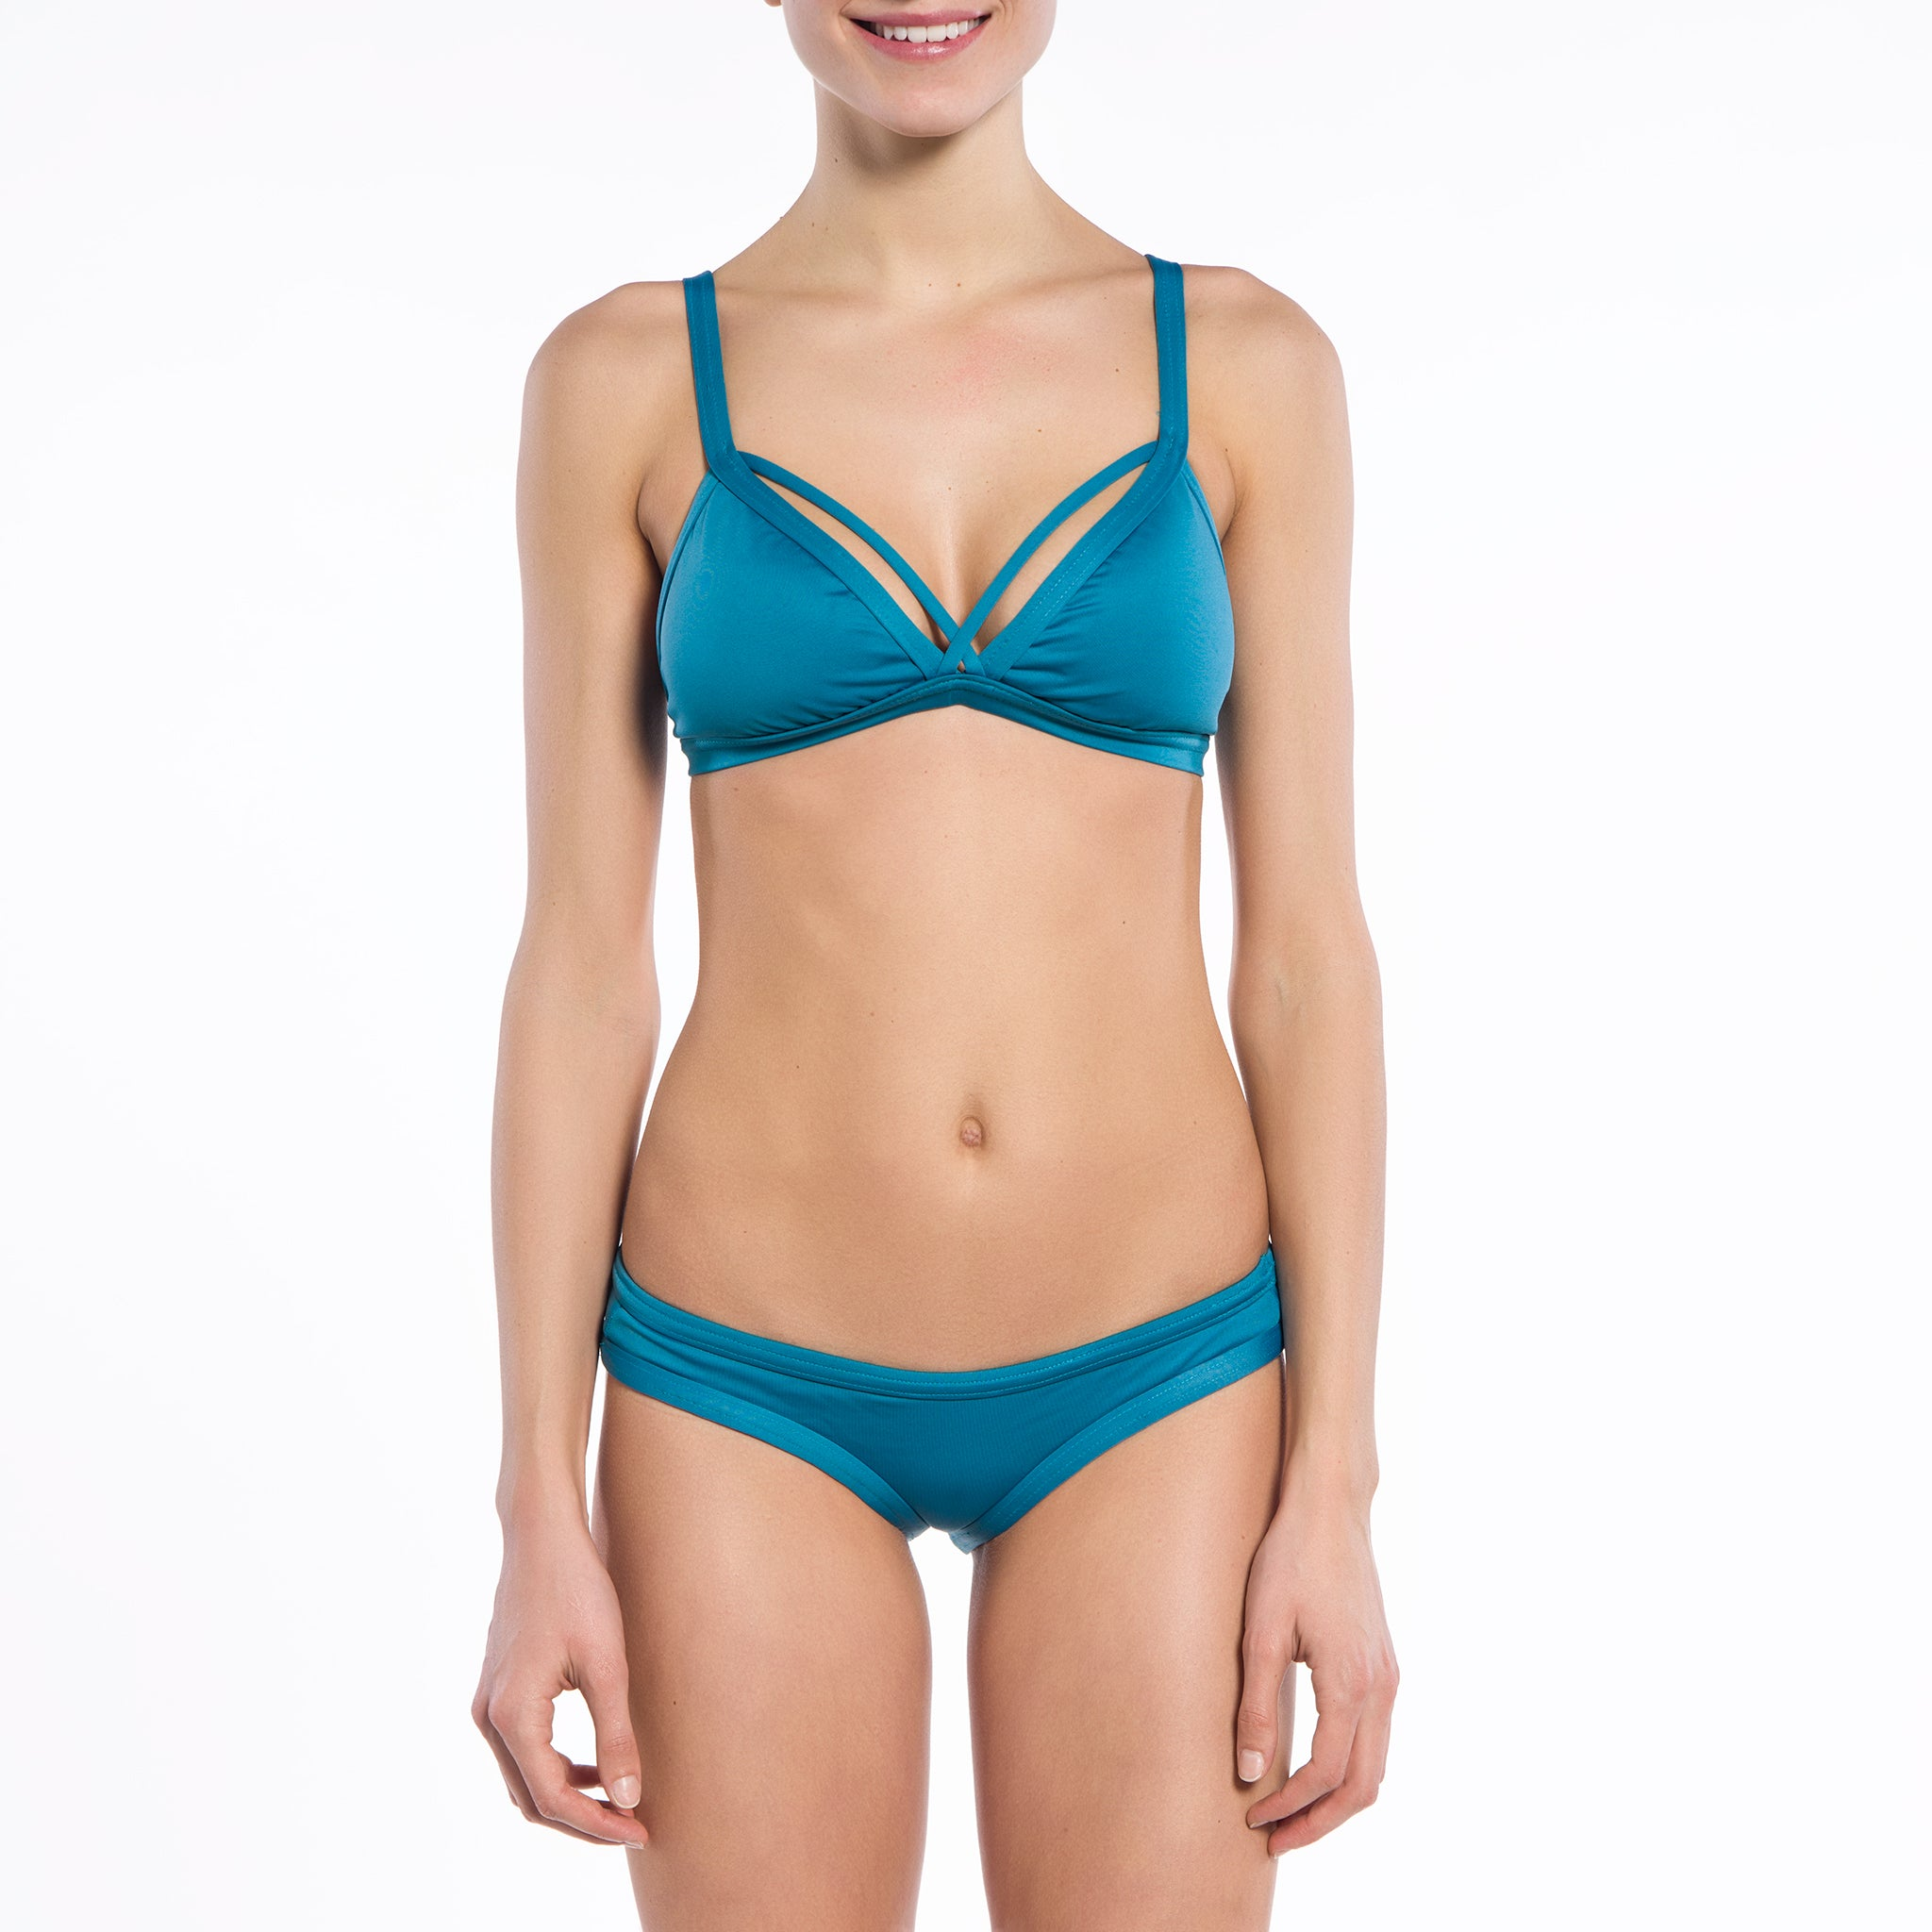 Solid Teal Collection Double Triangle Bikini Top